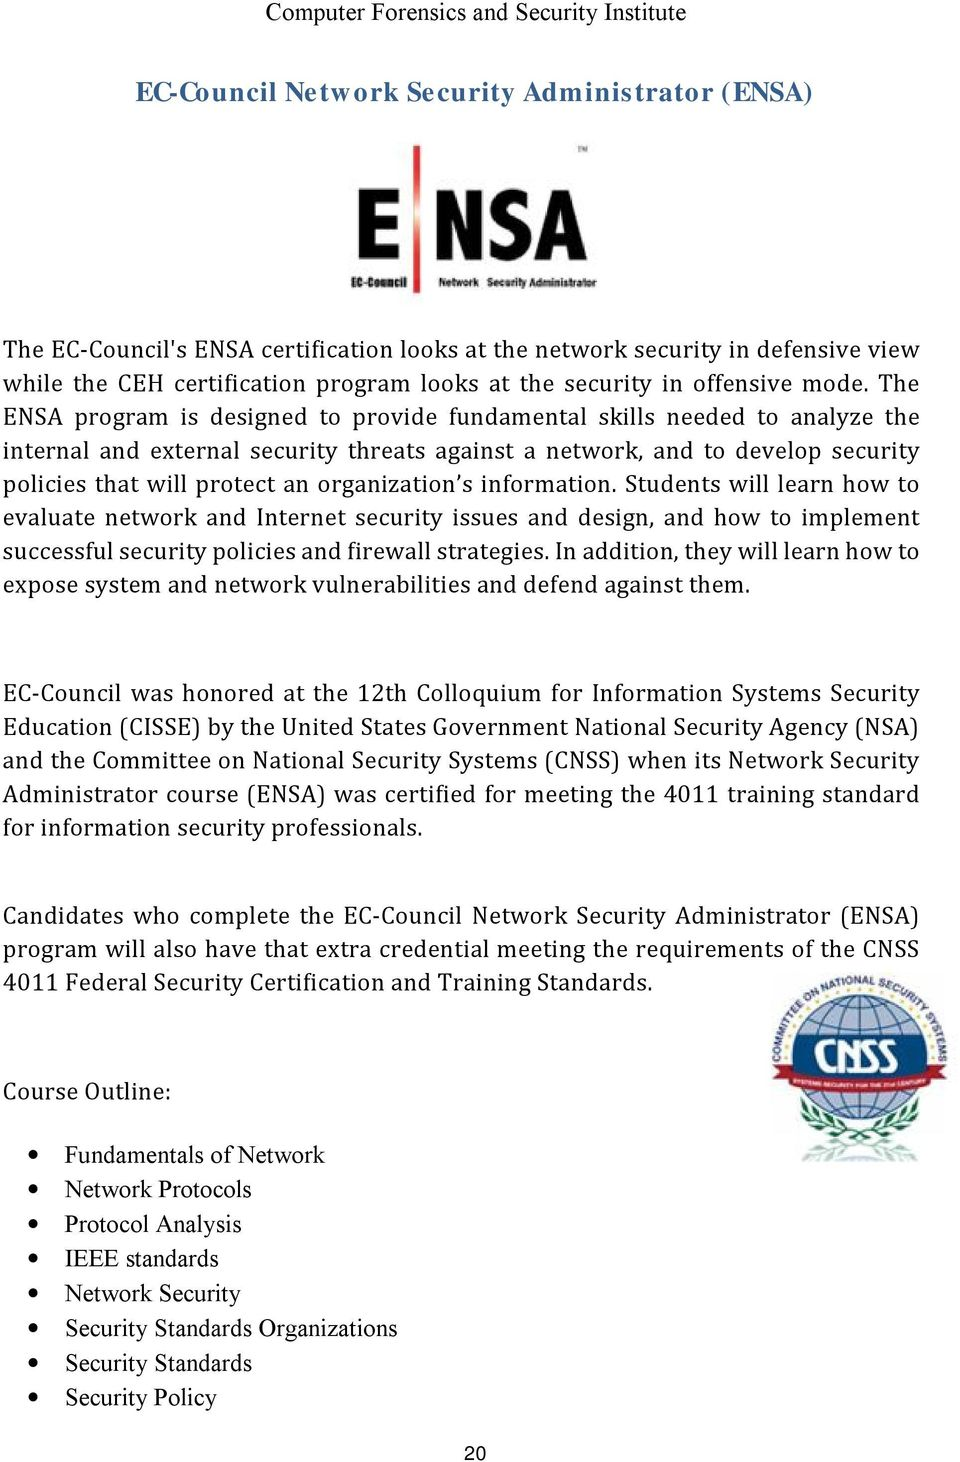 The ENSA program is designed to provide fundamental skills needed to analyze the internal and external security threats against a network, and to develop security policies that will protect an